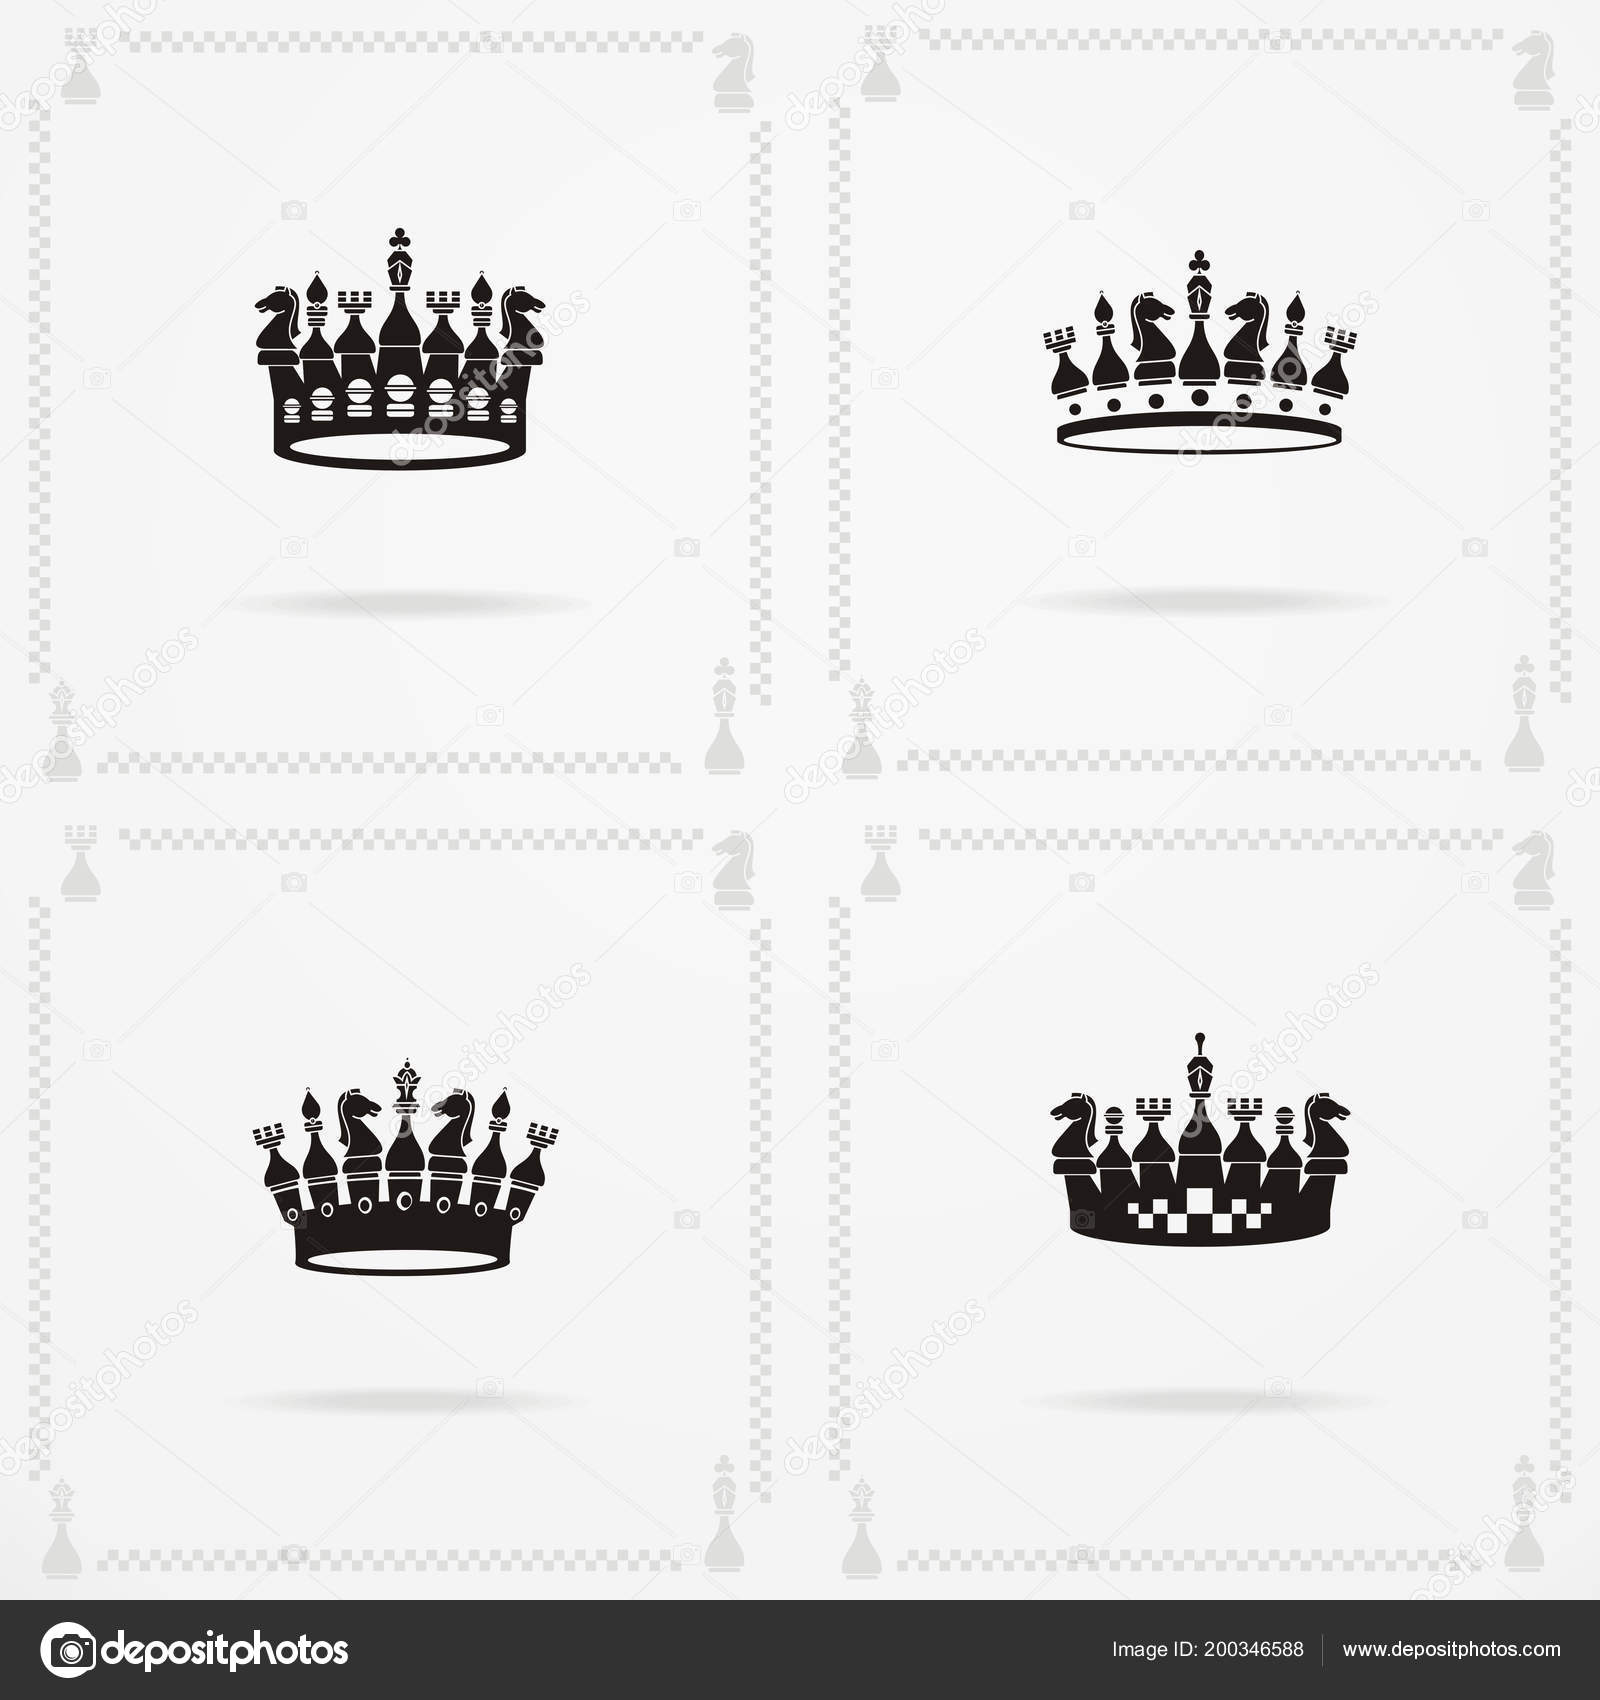 King And Queen Crowns Symbols Stock Vector Fontgraf 200346588